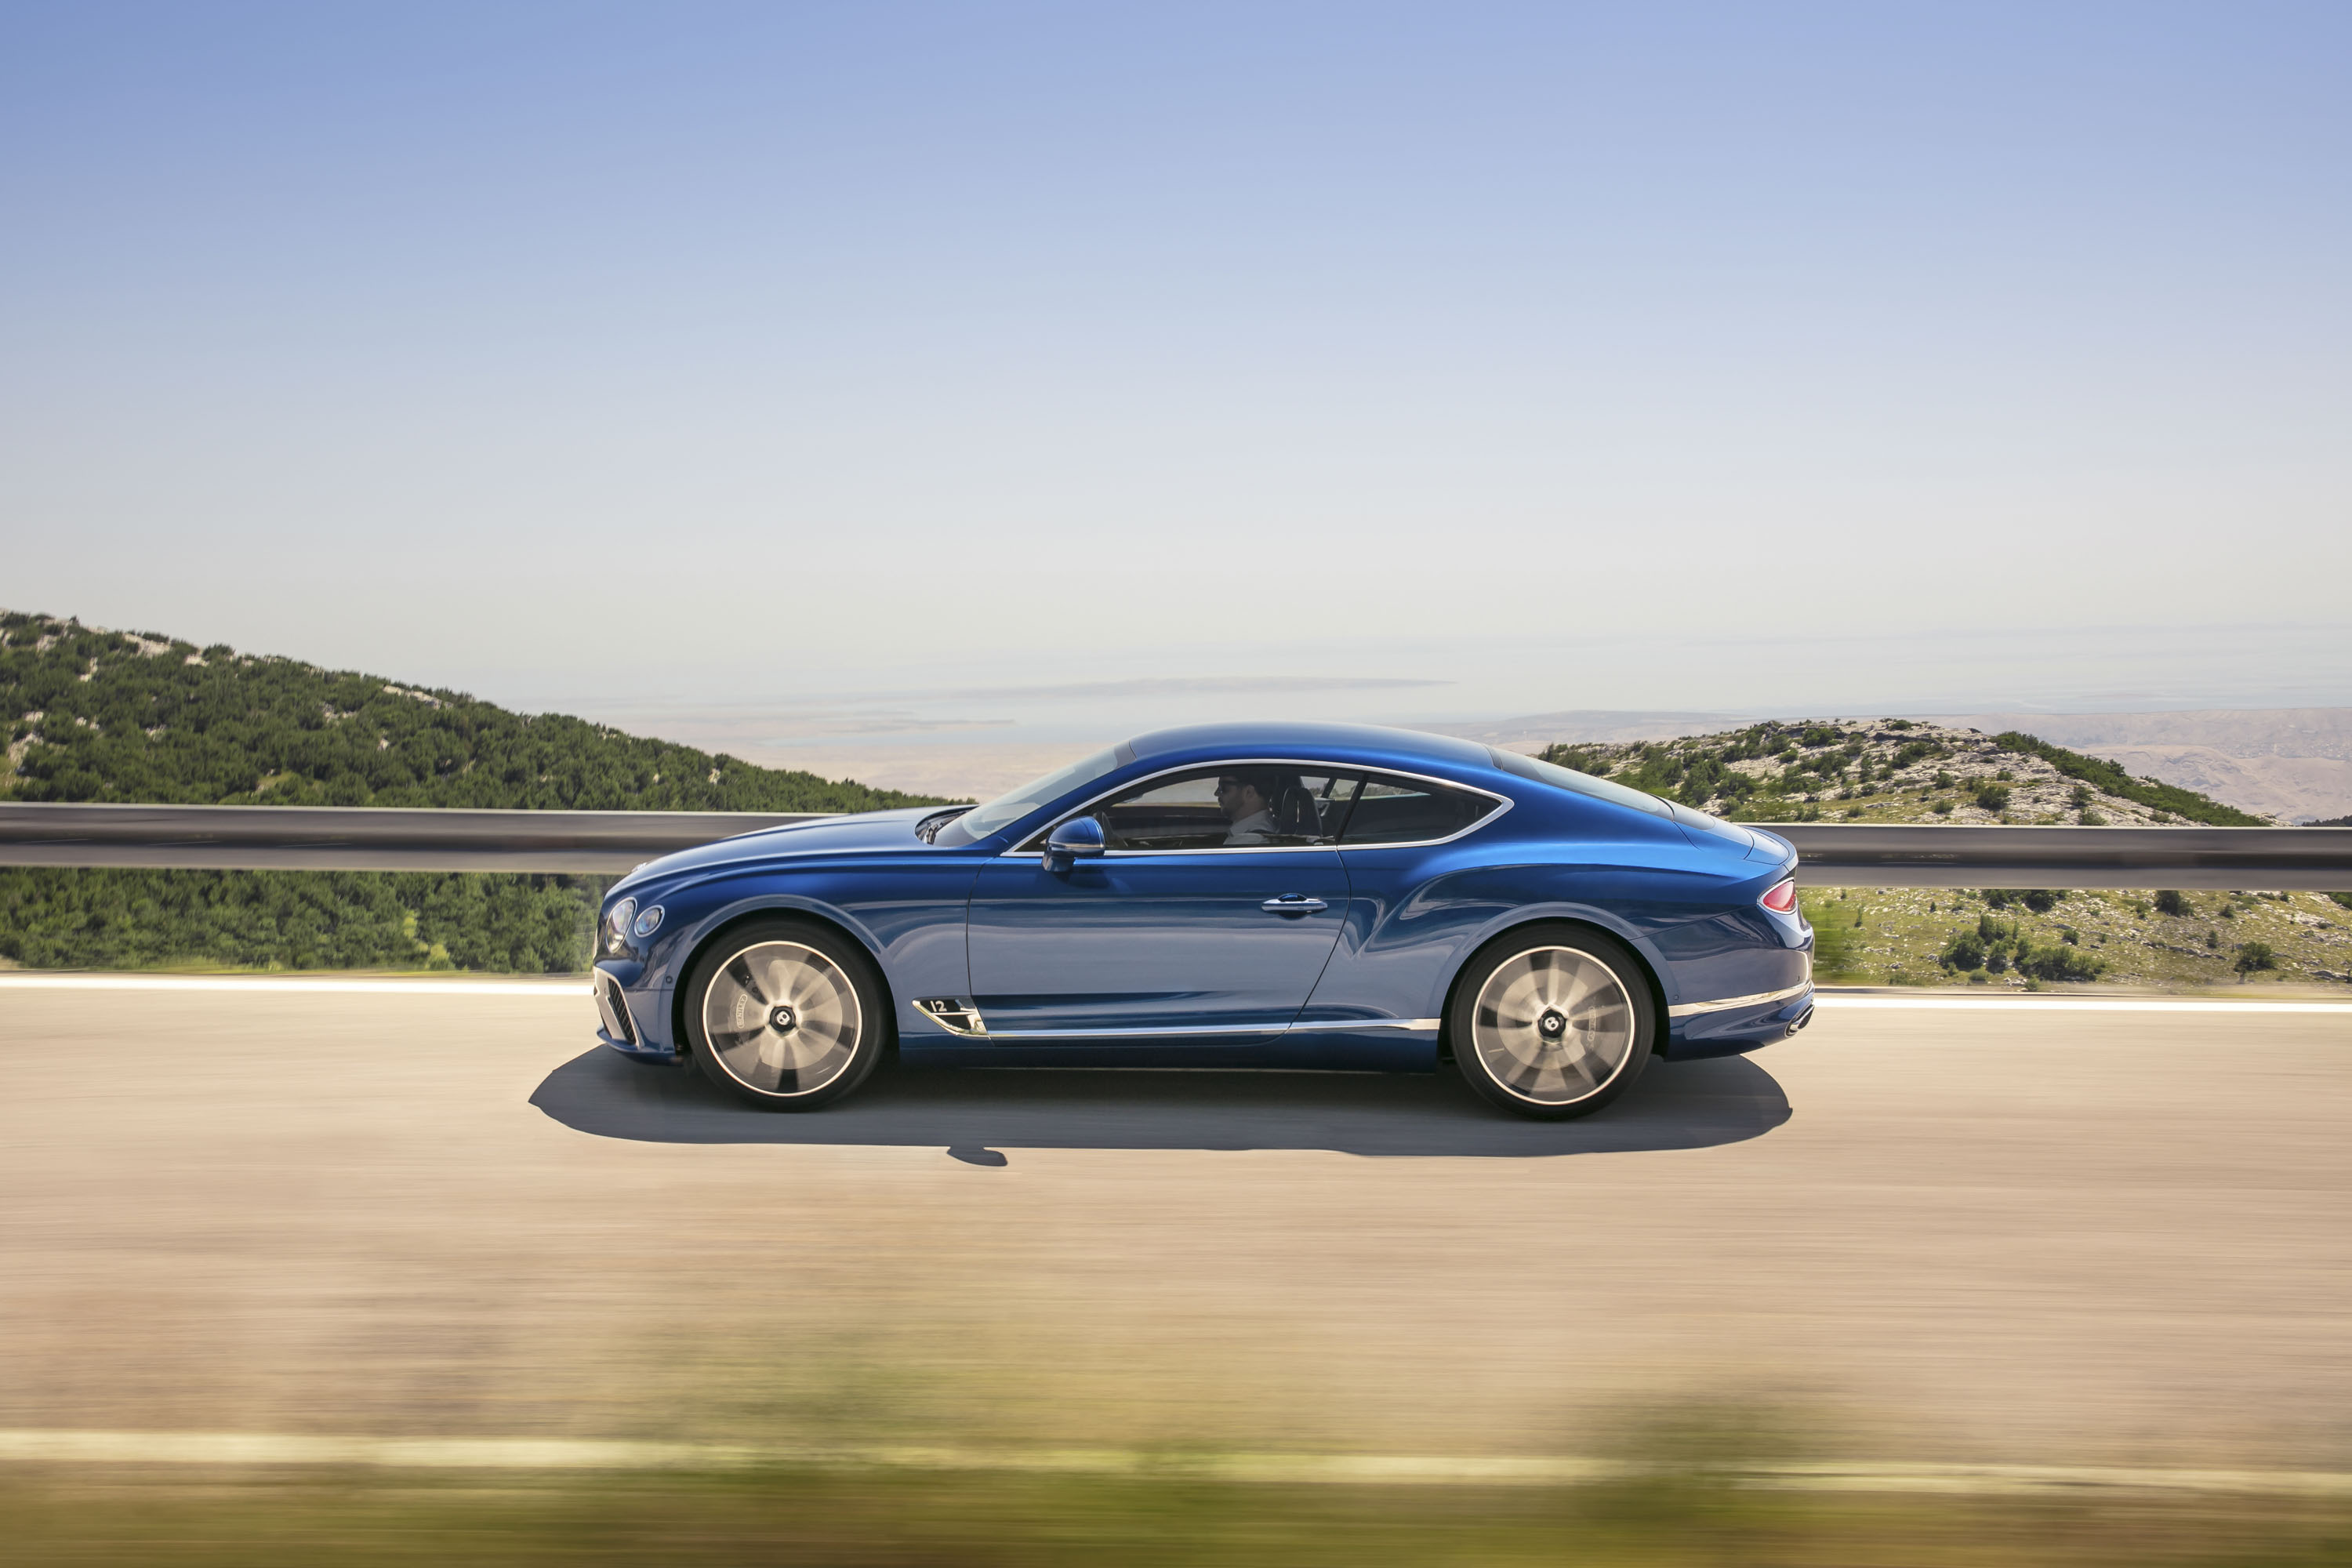 Charmant Bentley Unveils 2018 Continental GT News   Top Speed. »